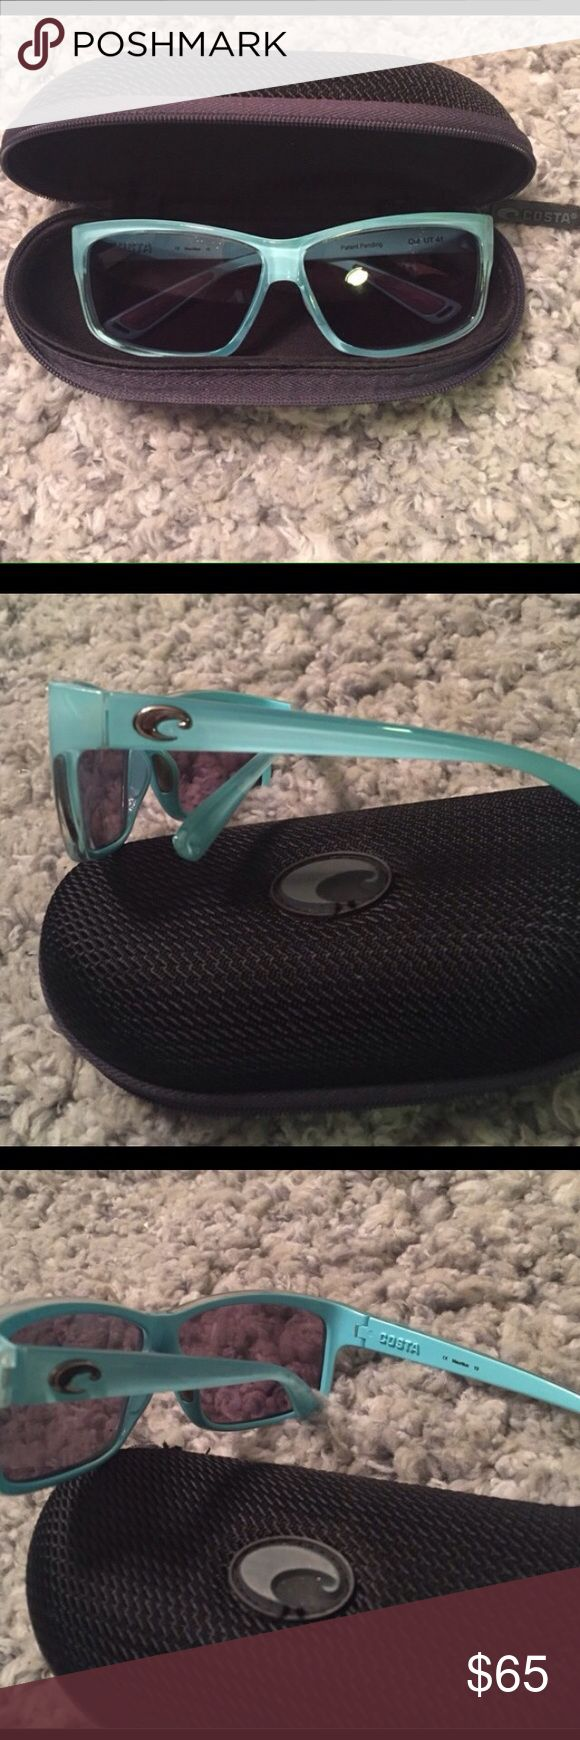 Light blue costa Del Mar sunglasses Perfect condition, come with case but I need them to be polarized for fishing. What a great deal on these sunnies! Costa Del Mar Accessories Sunglasses